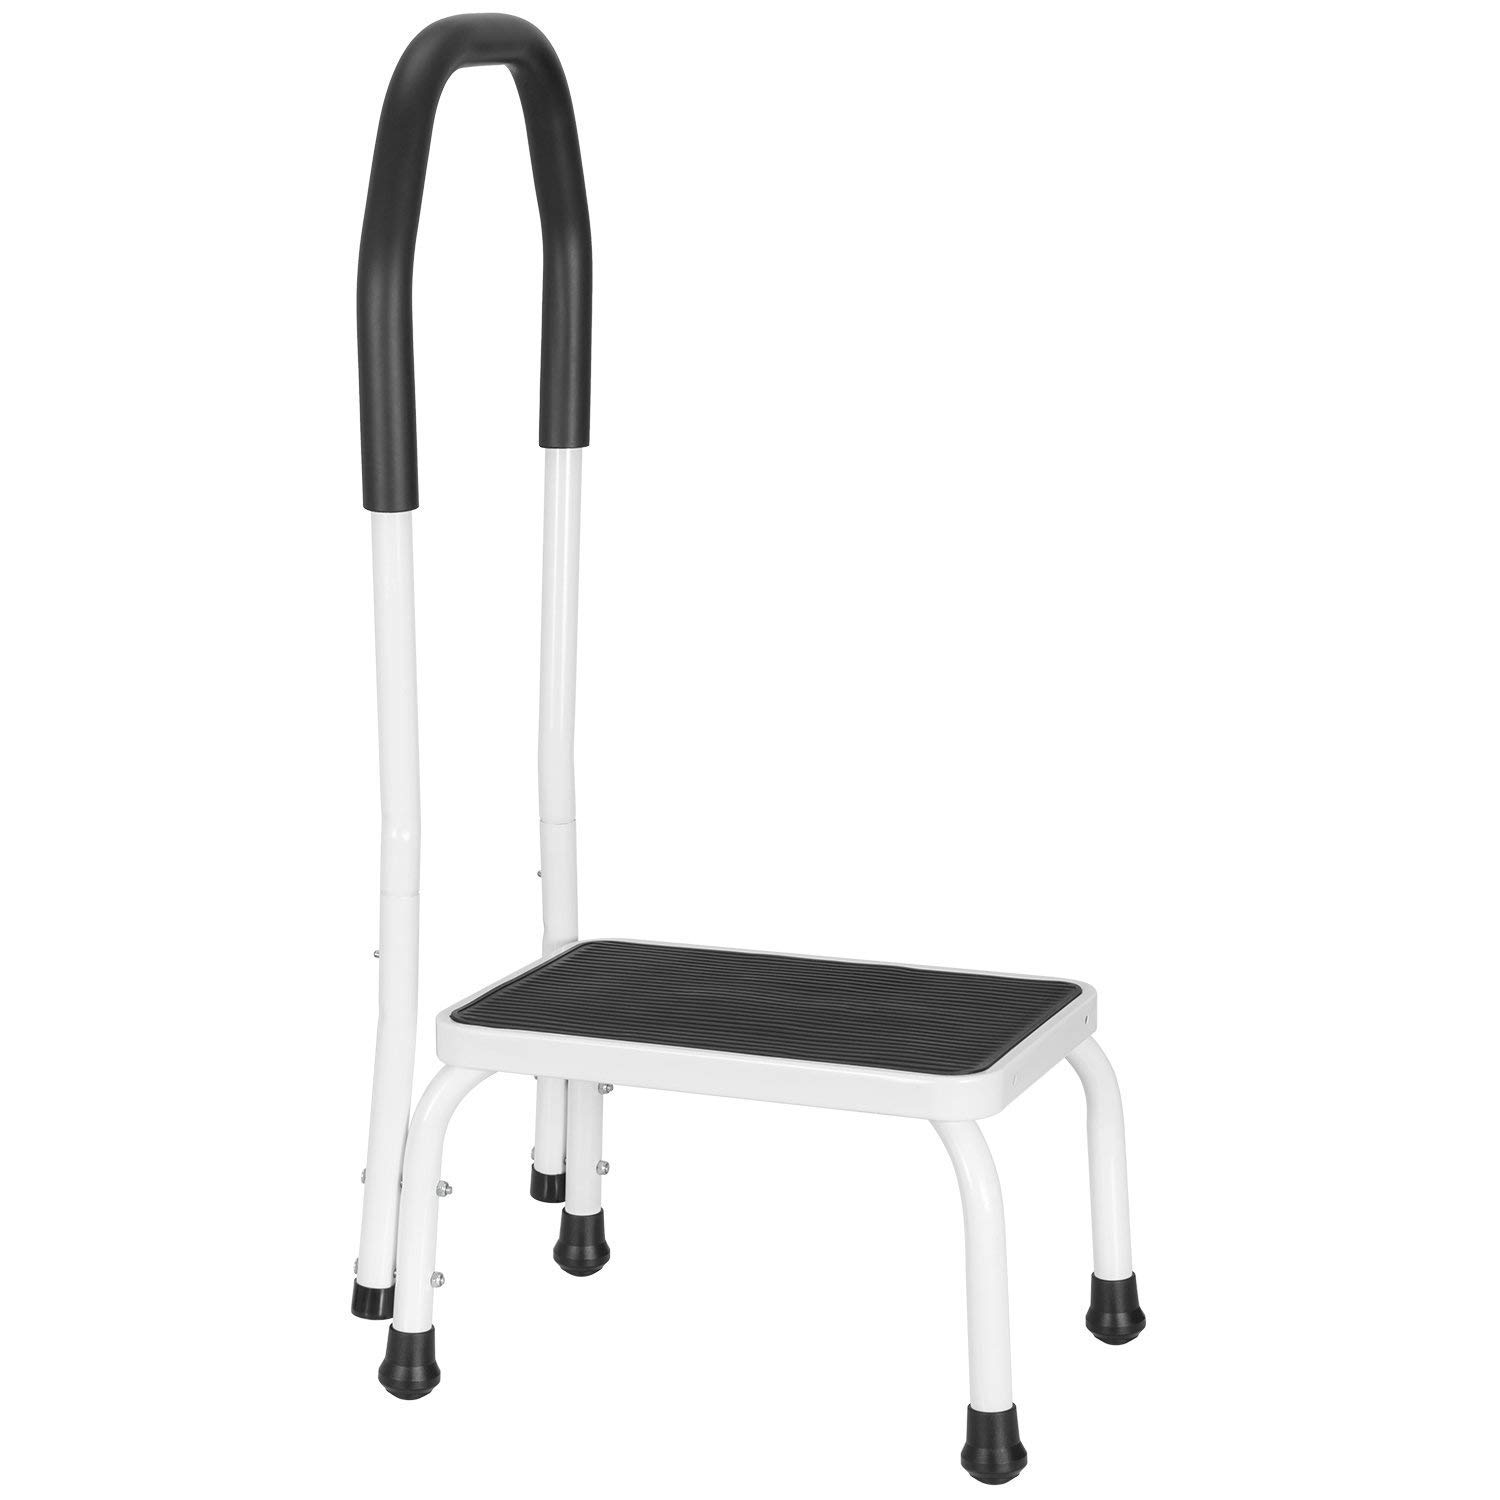 Ollieroo Step Stool Steel Support Ladder with Cushion Grip Handle, Non Skid Rubber Platform One Step 330-Pound Capacity (Black+White) by Ollieroo